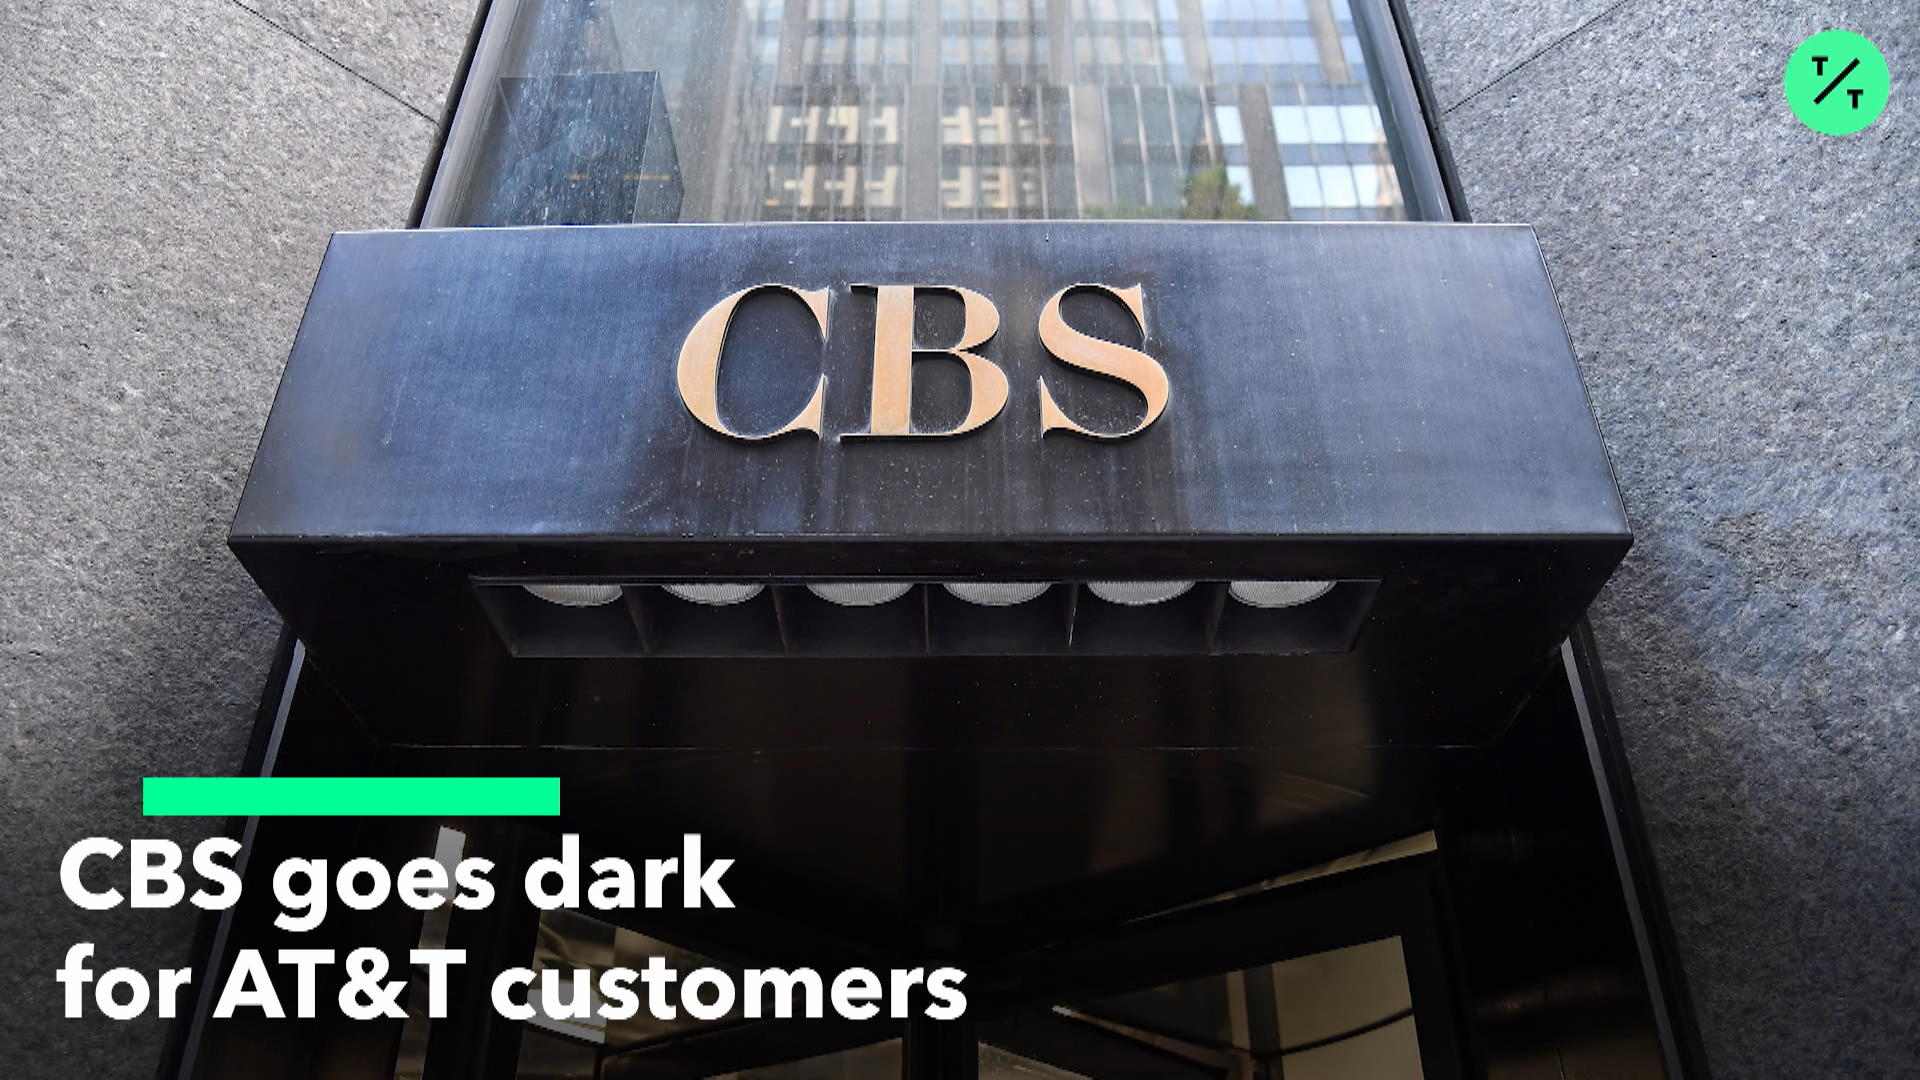 CBS Goes Dark For AT&T Customers